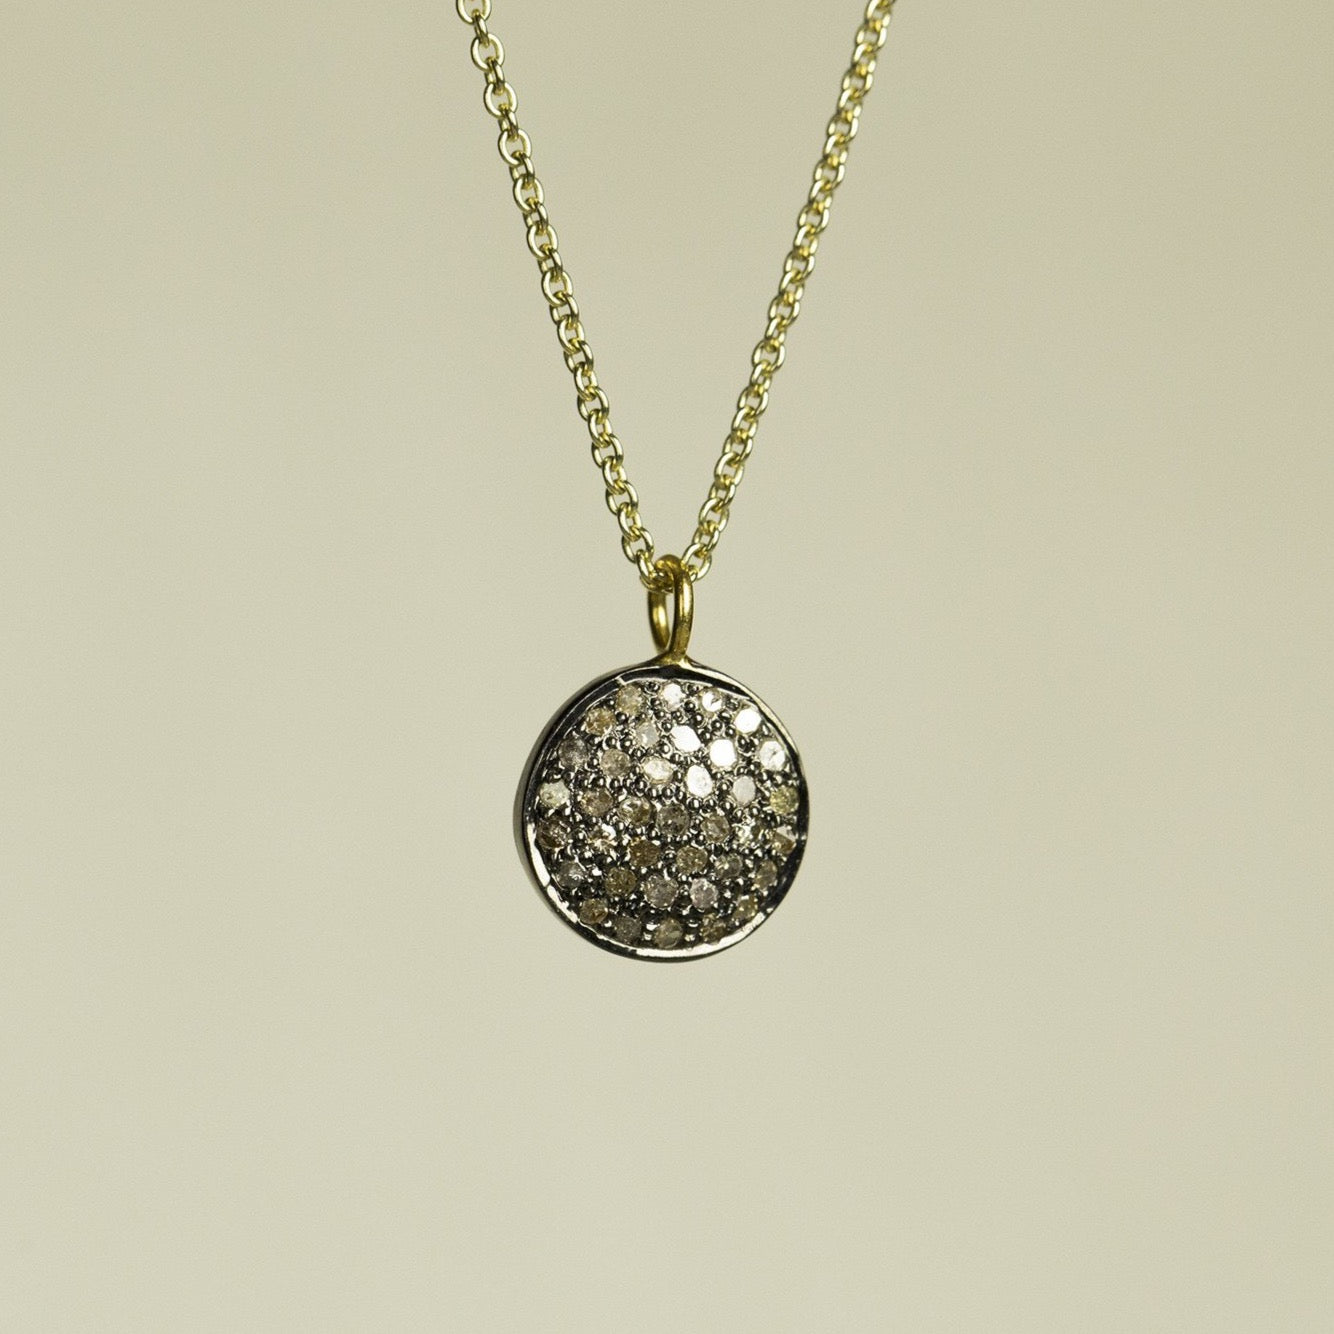 bright but not really diamond disc set in oxidised silver - for fans of the understated